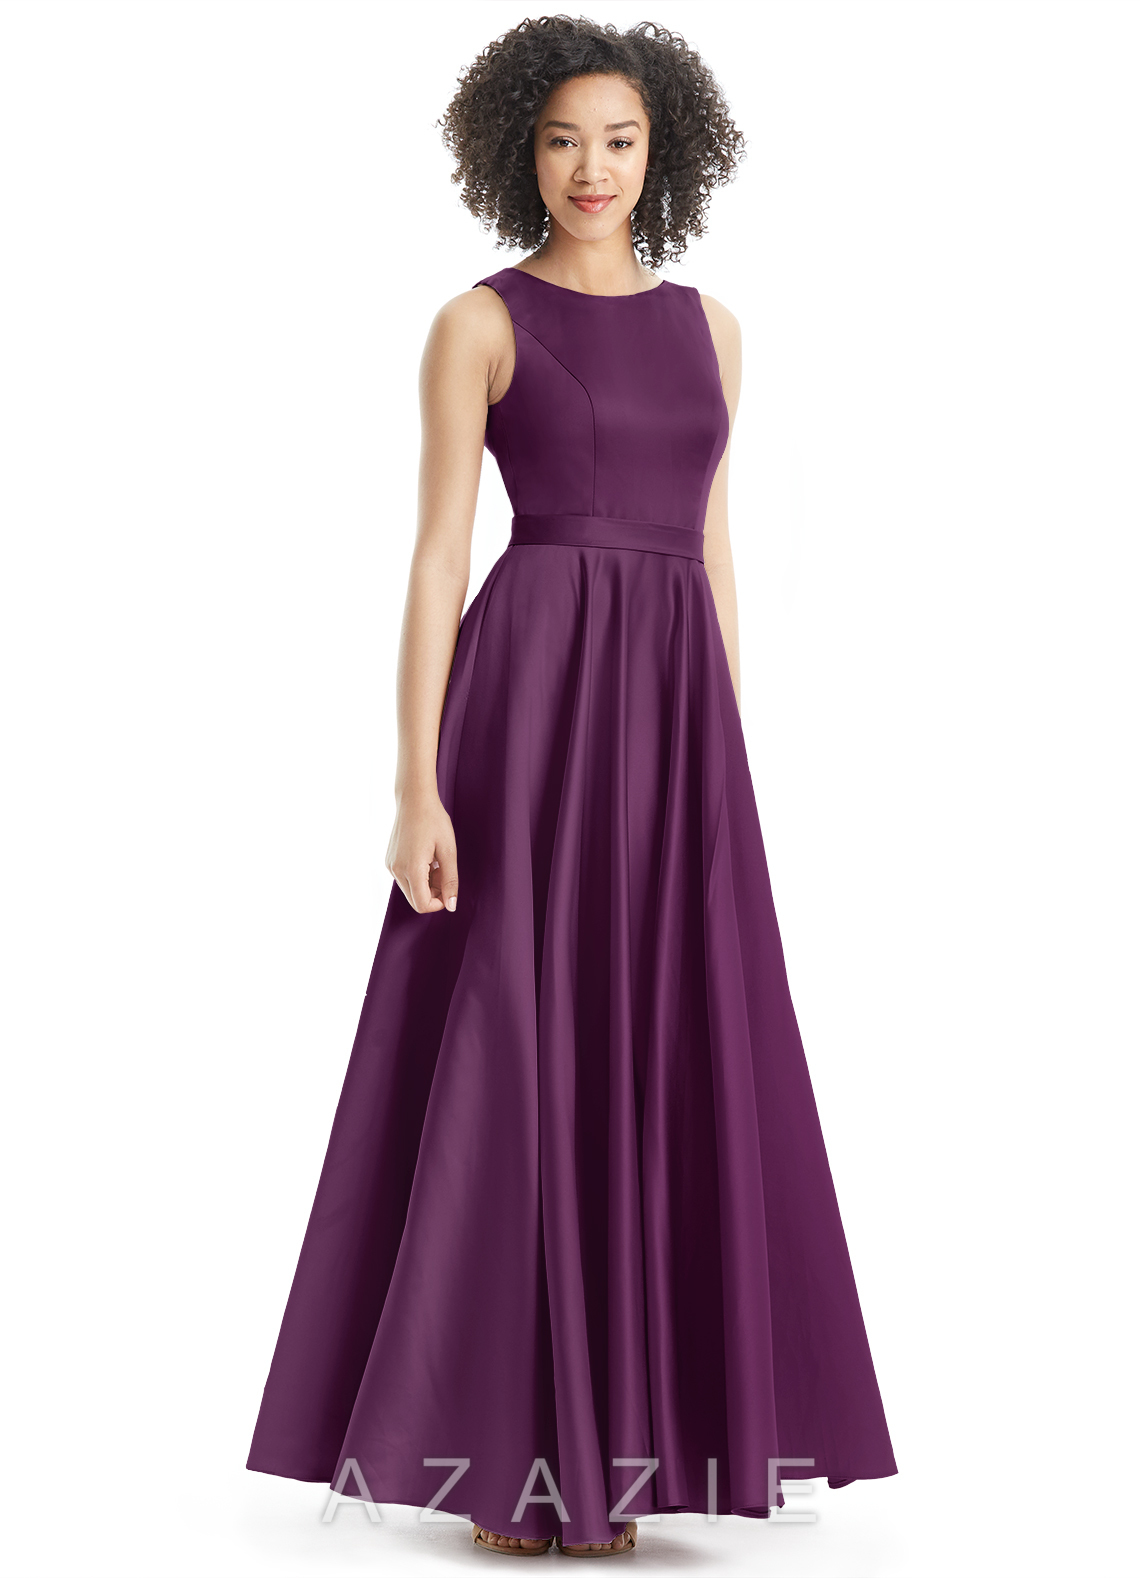 Azazie Jakayla Bridesmaid Dress | Azazie